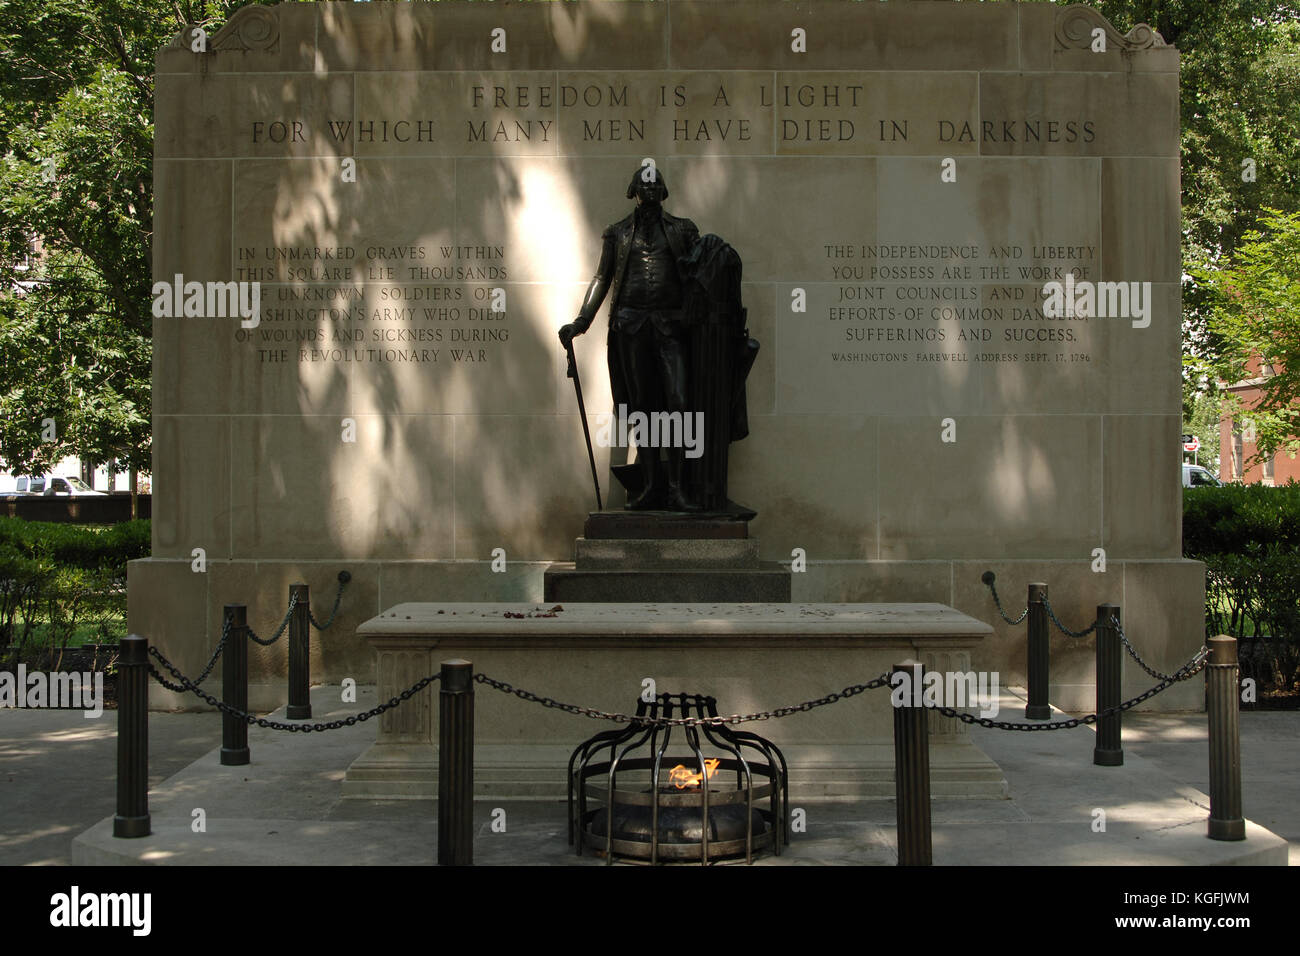 Unites States. Pennsylvania. Philadelphia. Tomb of the Unknown Revolutionary War Soldier, 1957. By G. Edwing Brumbaugh - Stock Image